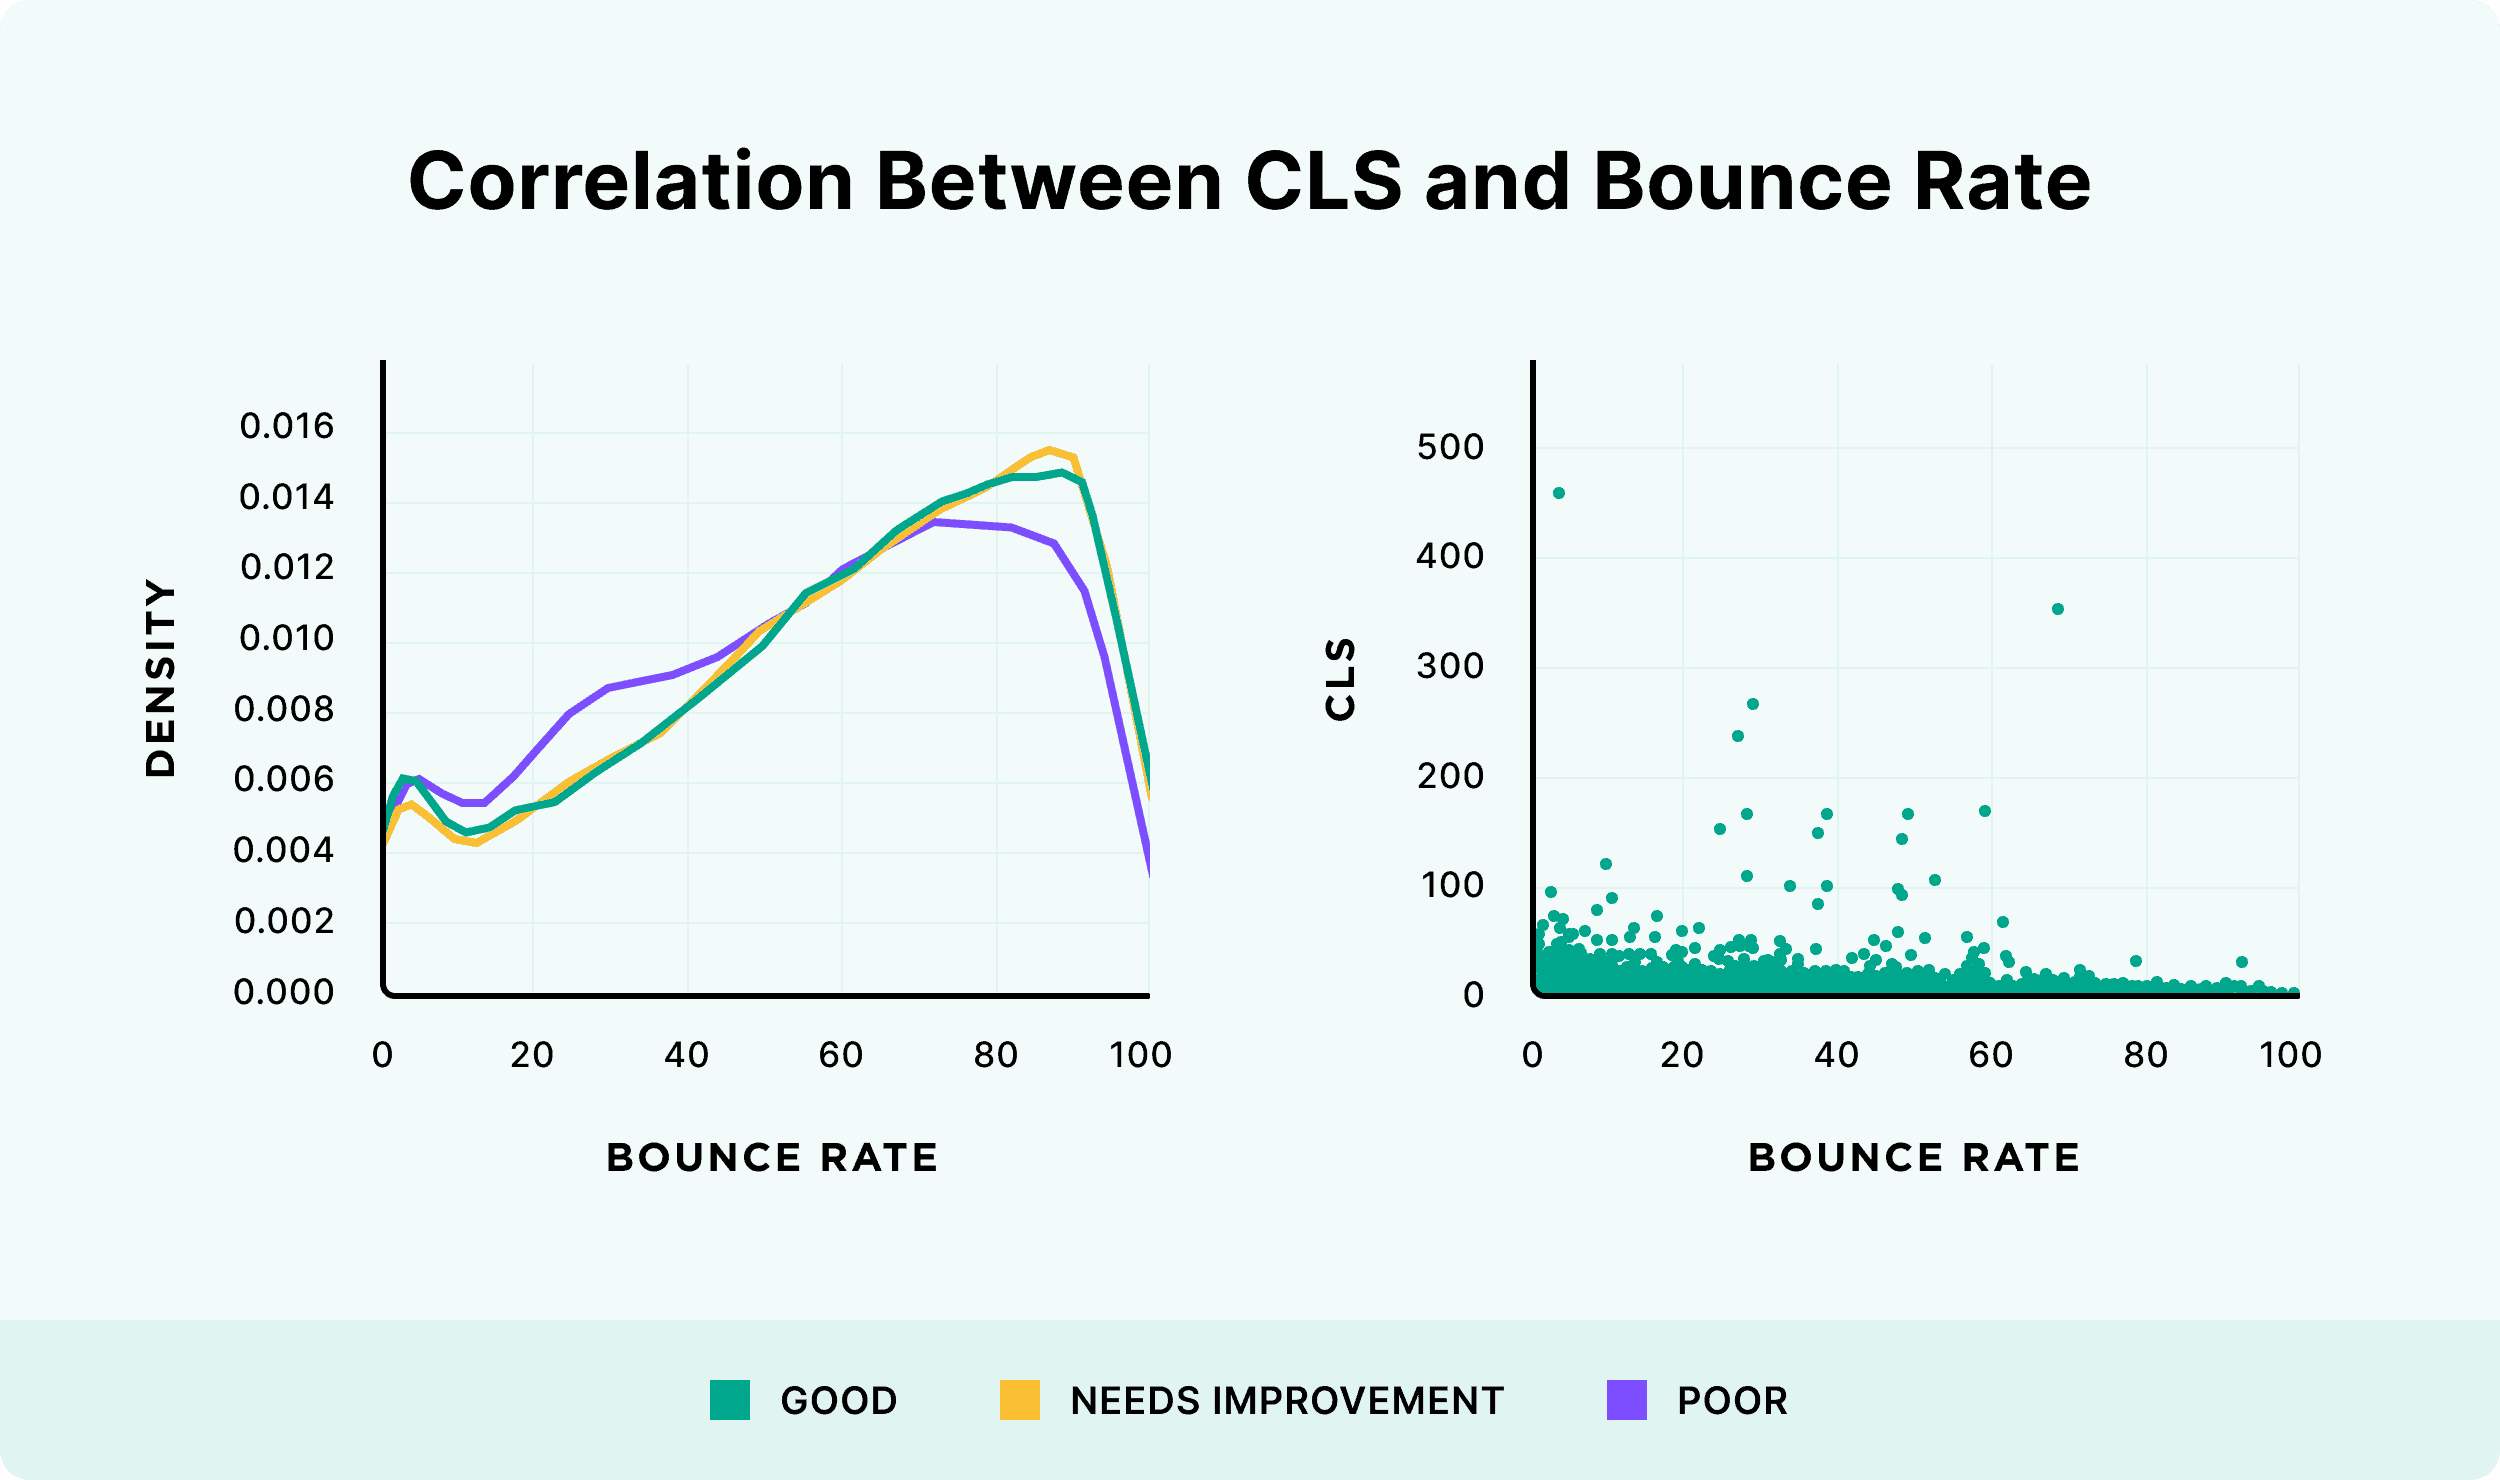 Correlation between CLS and bounce rate